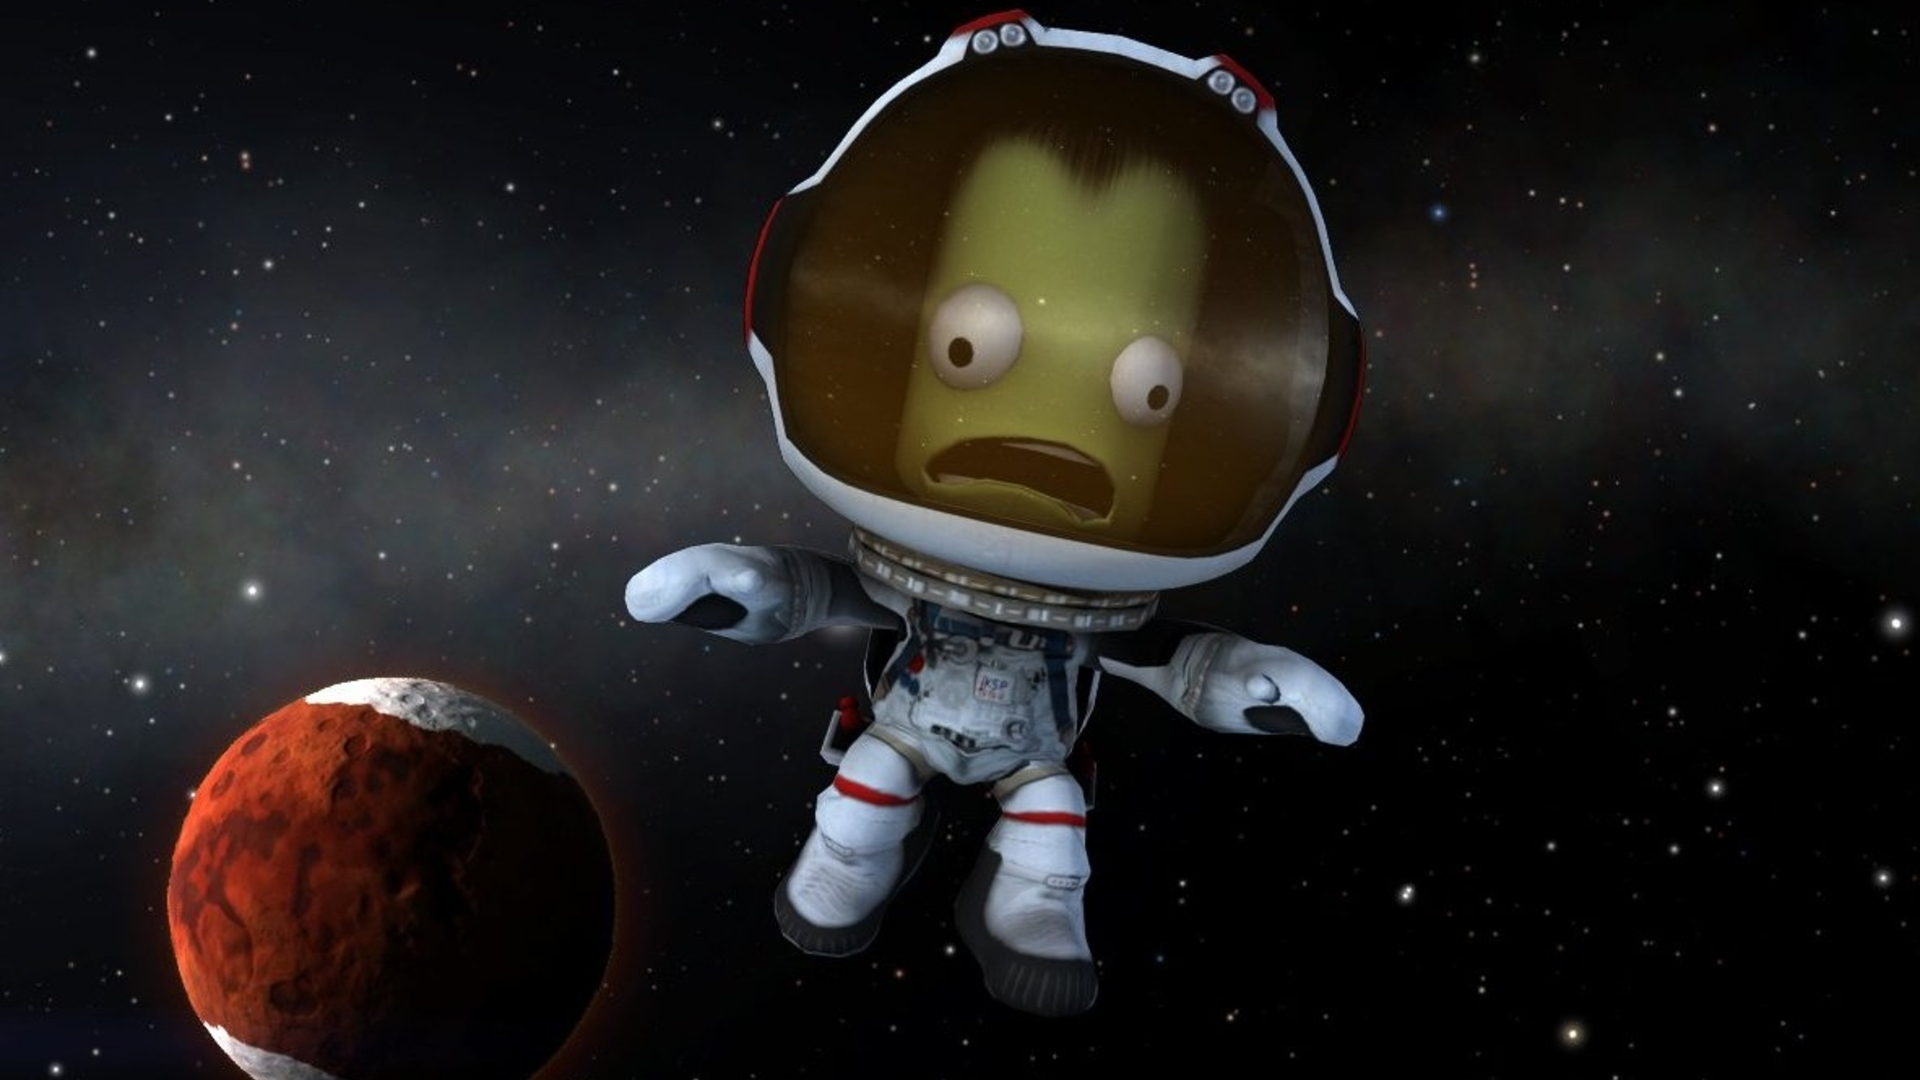 Kerbal Space Program is finally getting a v1.0 launch